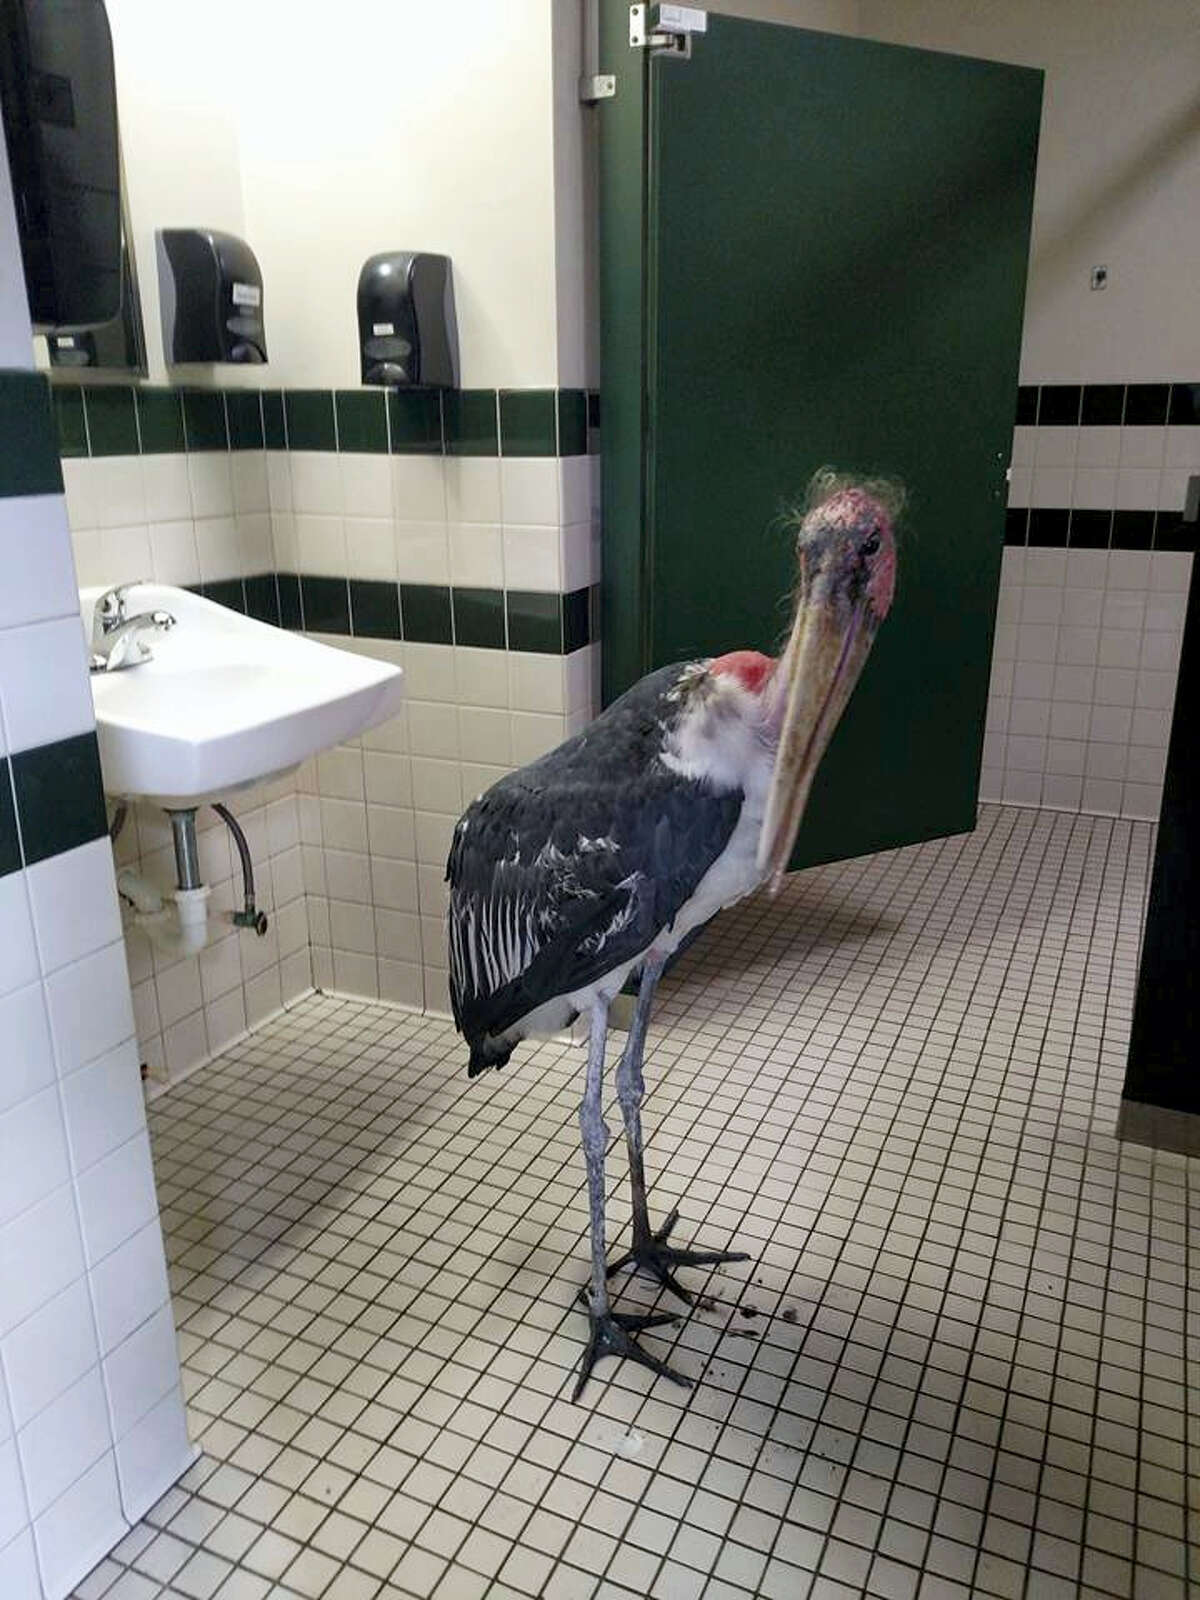 This Oct. 6, 2016, photo provided by the St. Augustine Alligator Farm and Zoological Park shows a marabou stork in a restroom at the facility in St. Augustine, Fla. The zoo said it moved all of its birds and mammals inside ahead of Hurricane Matthew's arrival.